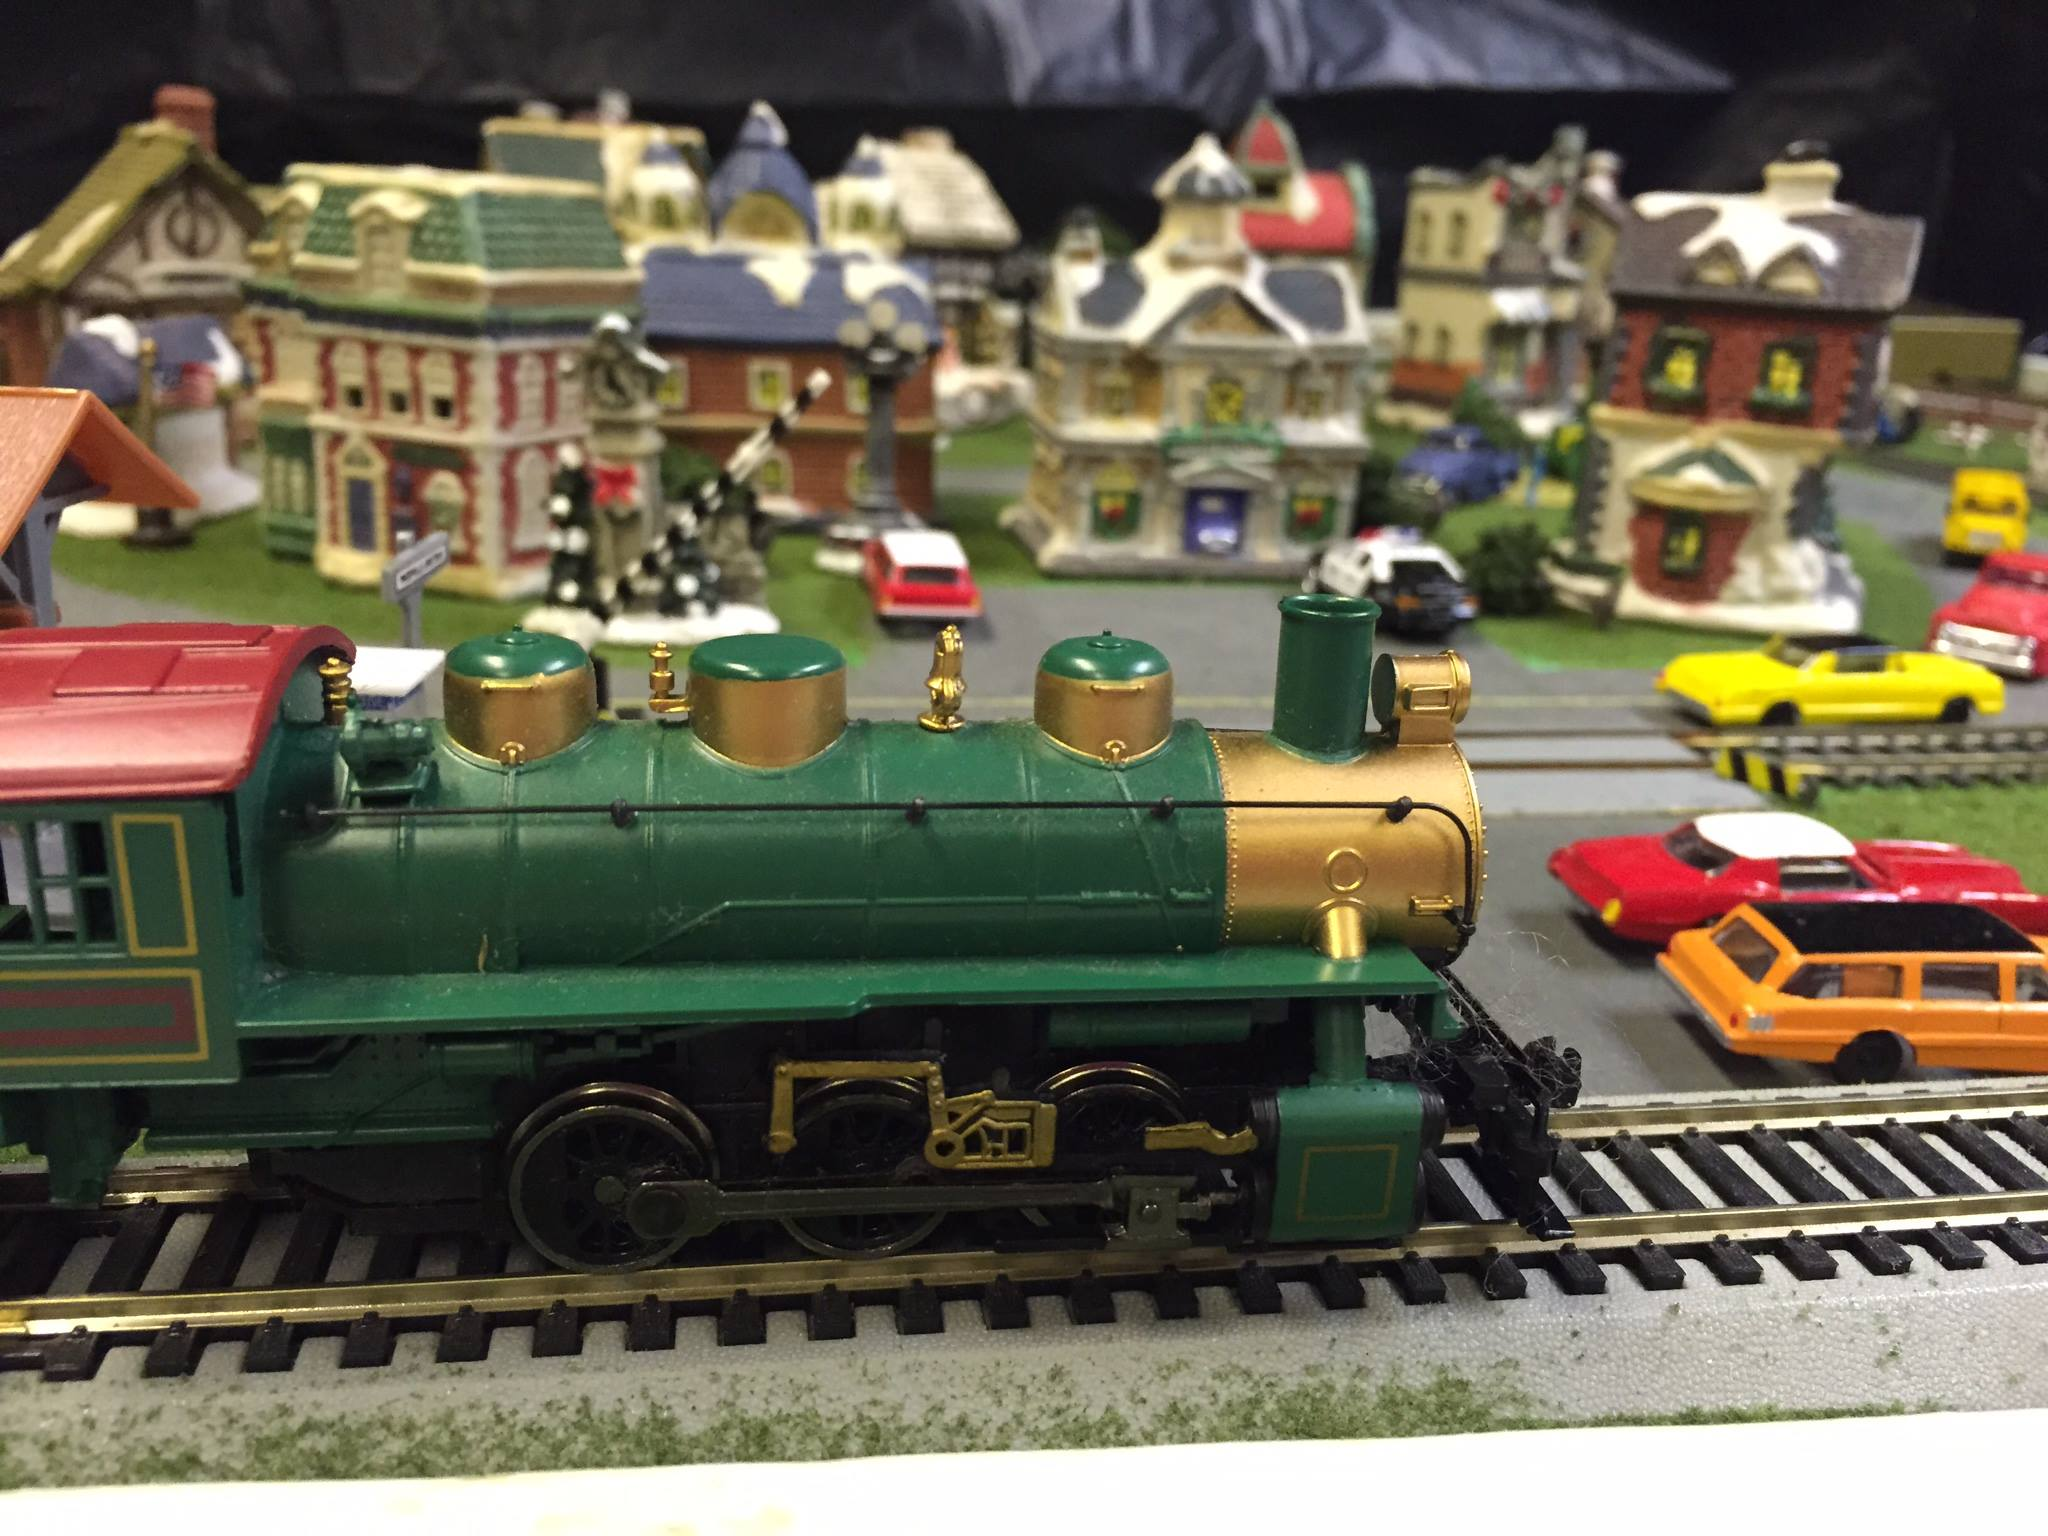 join our community for a christmas train village display gift sale and holiday baked goods packages no charge to see the trains donations accepted - The Christmas Train